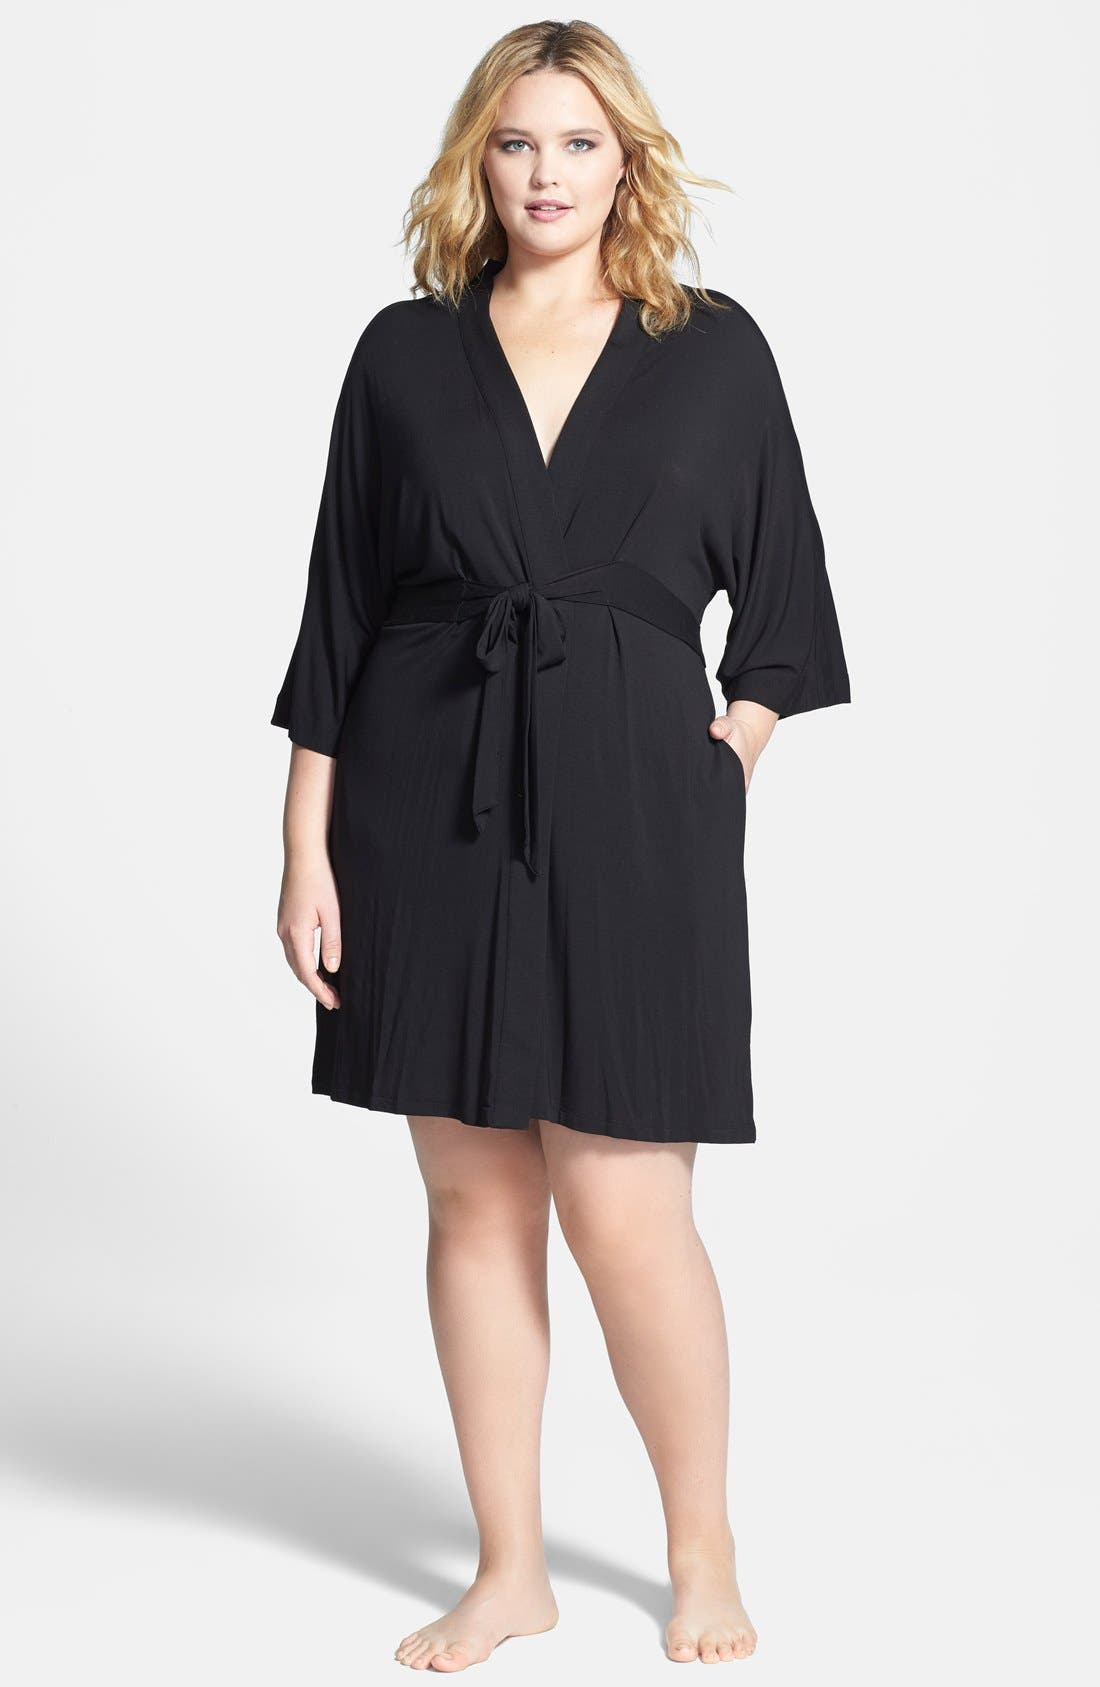 DKNY 'Urban Essentials' Robe (Plus Size)